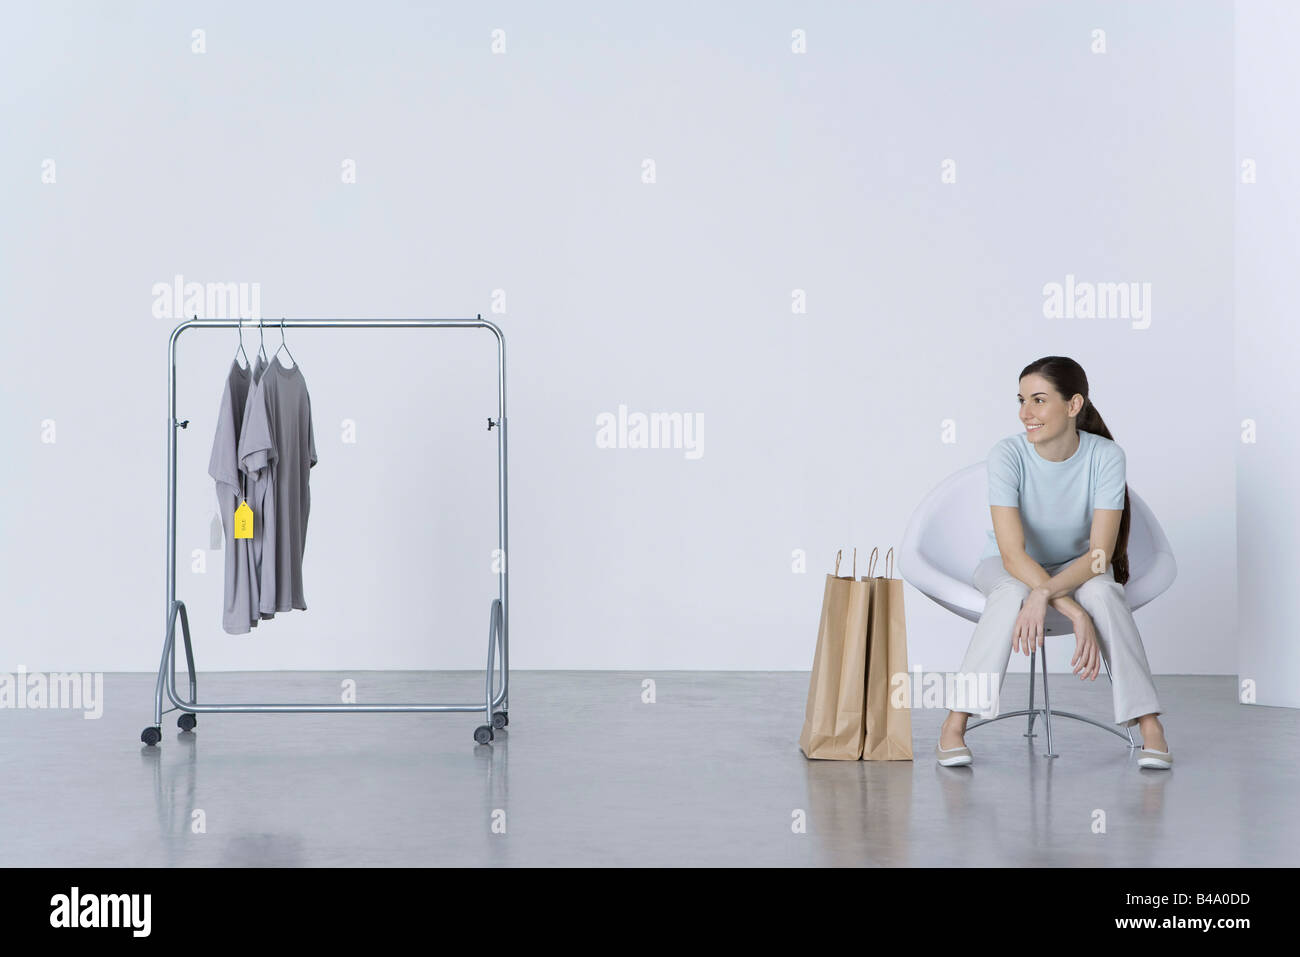 Woman sitting with shopping bags, looking at tee-shirts on nearby rack - Stock Image